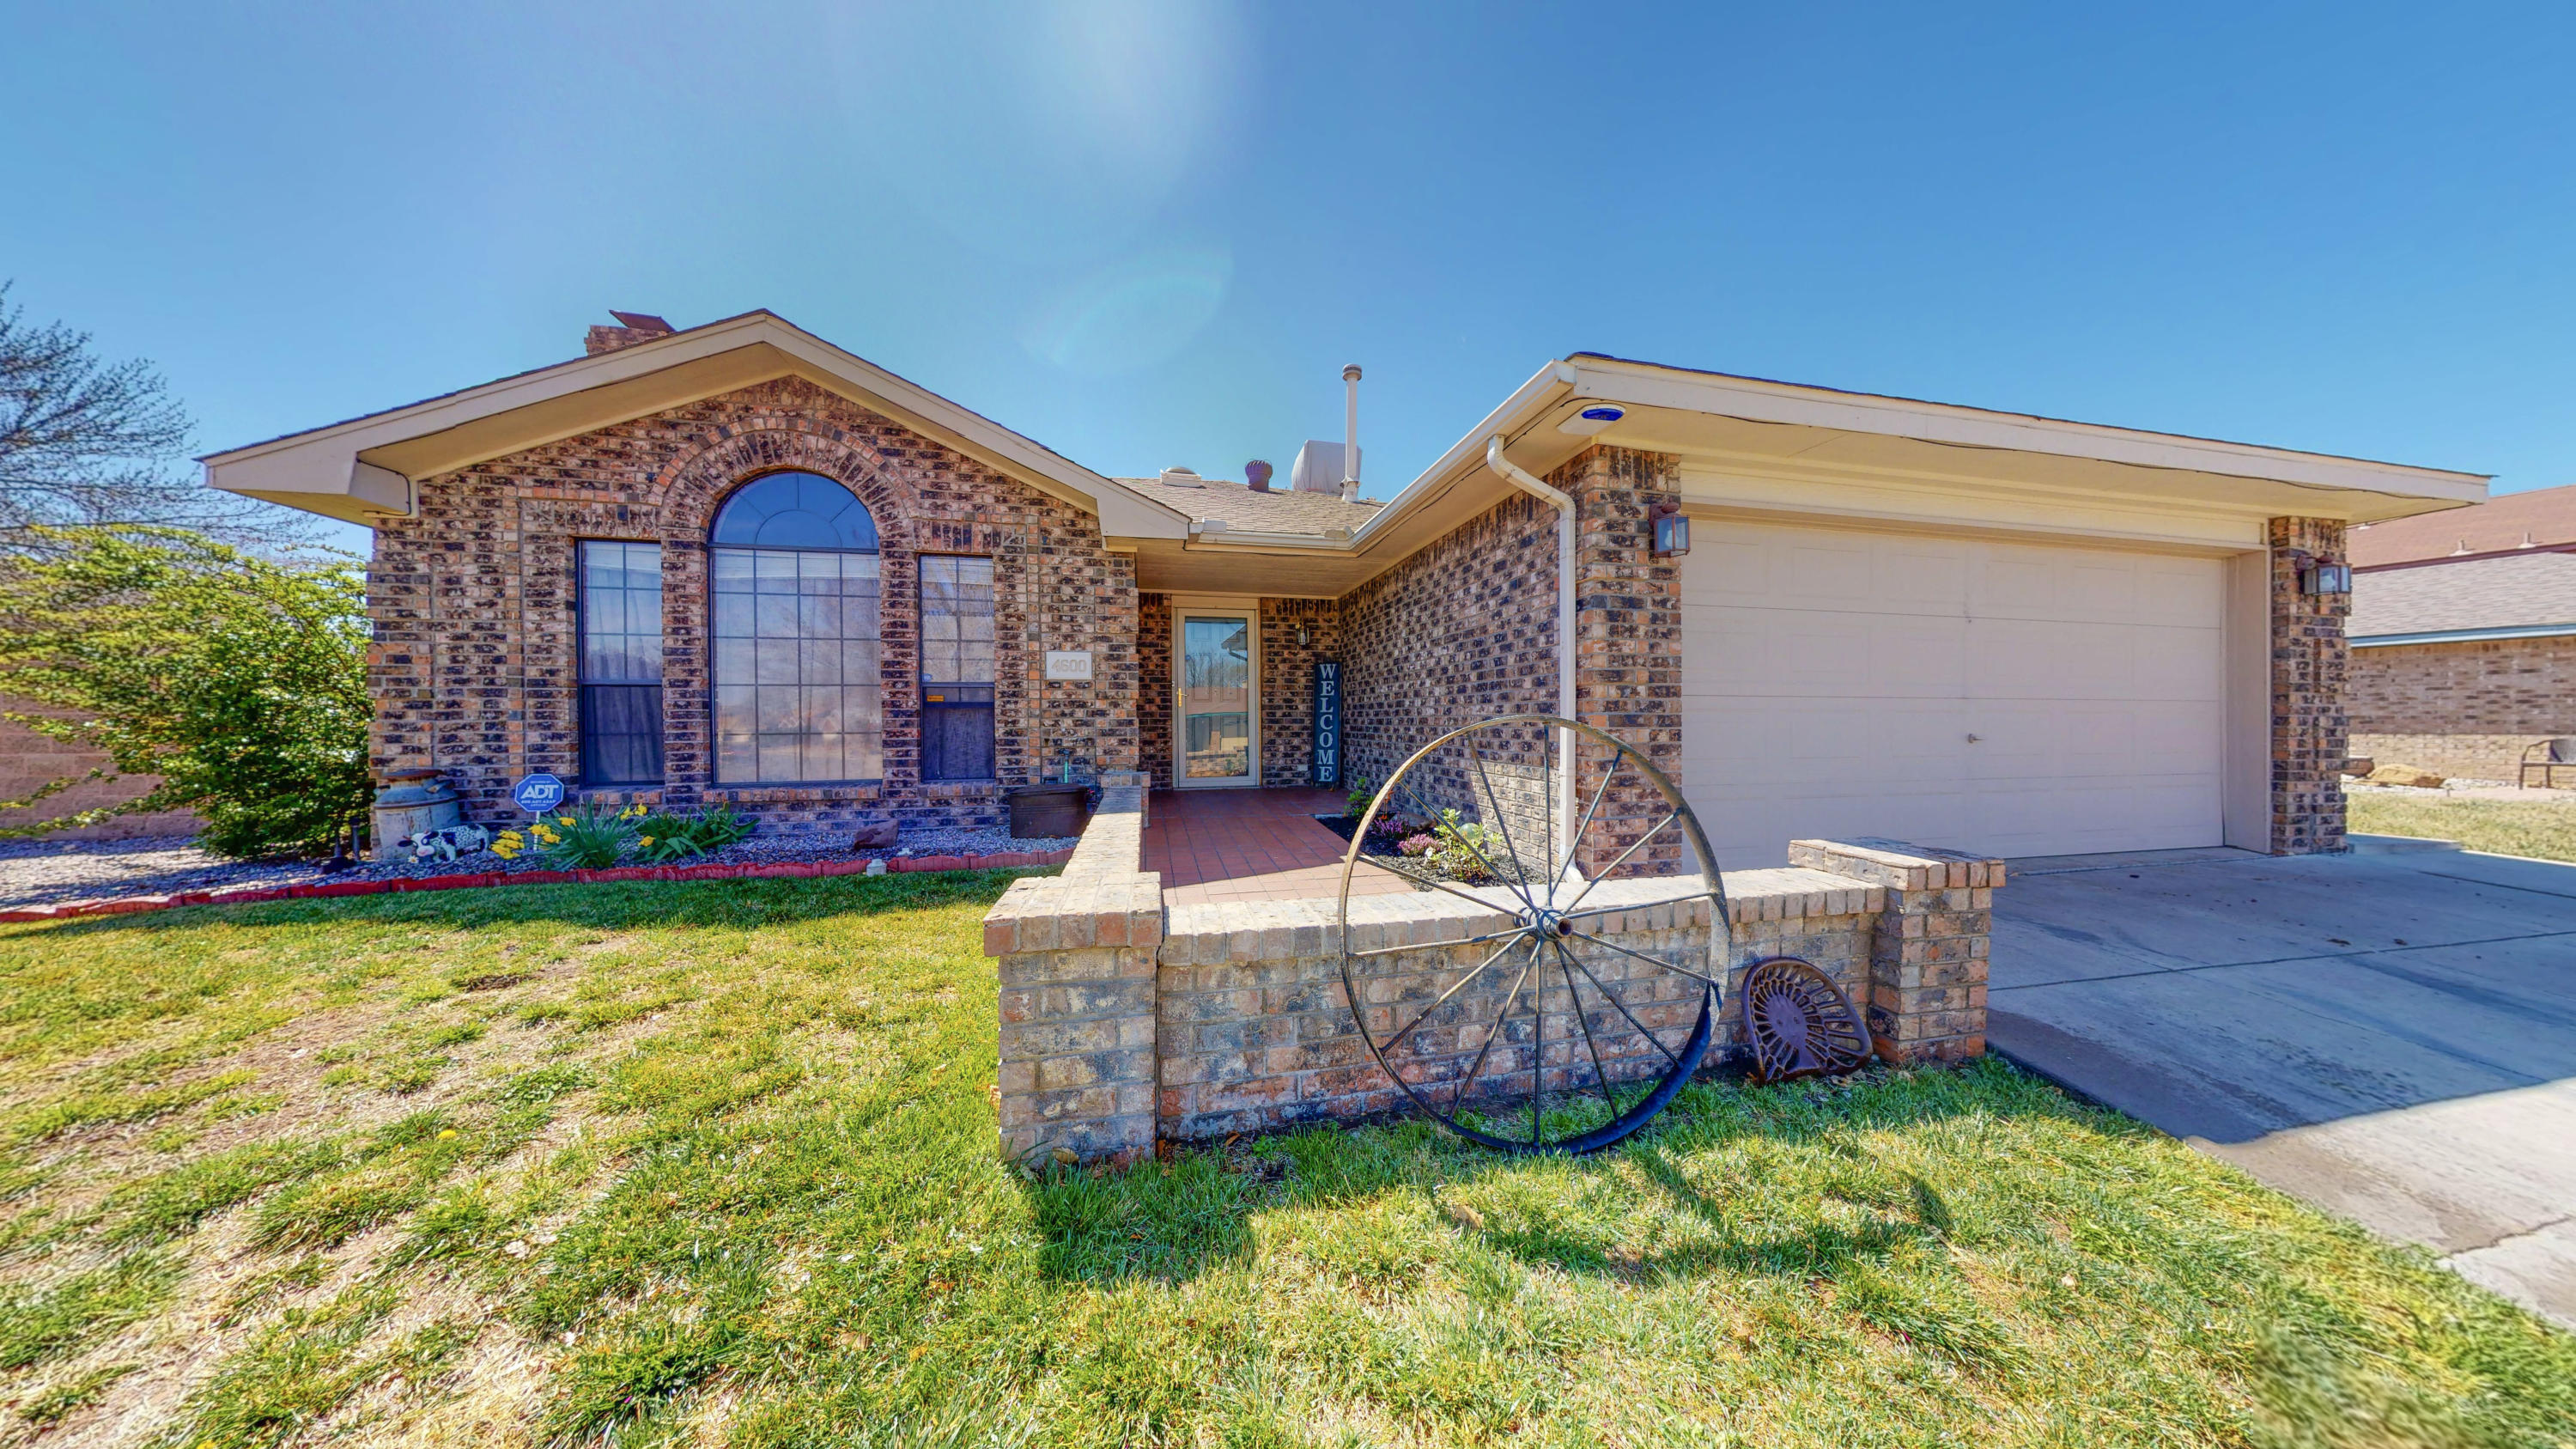 4600 Firewheel Rd. Road, Albuquerque NM 87120